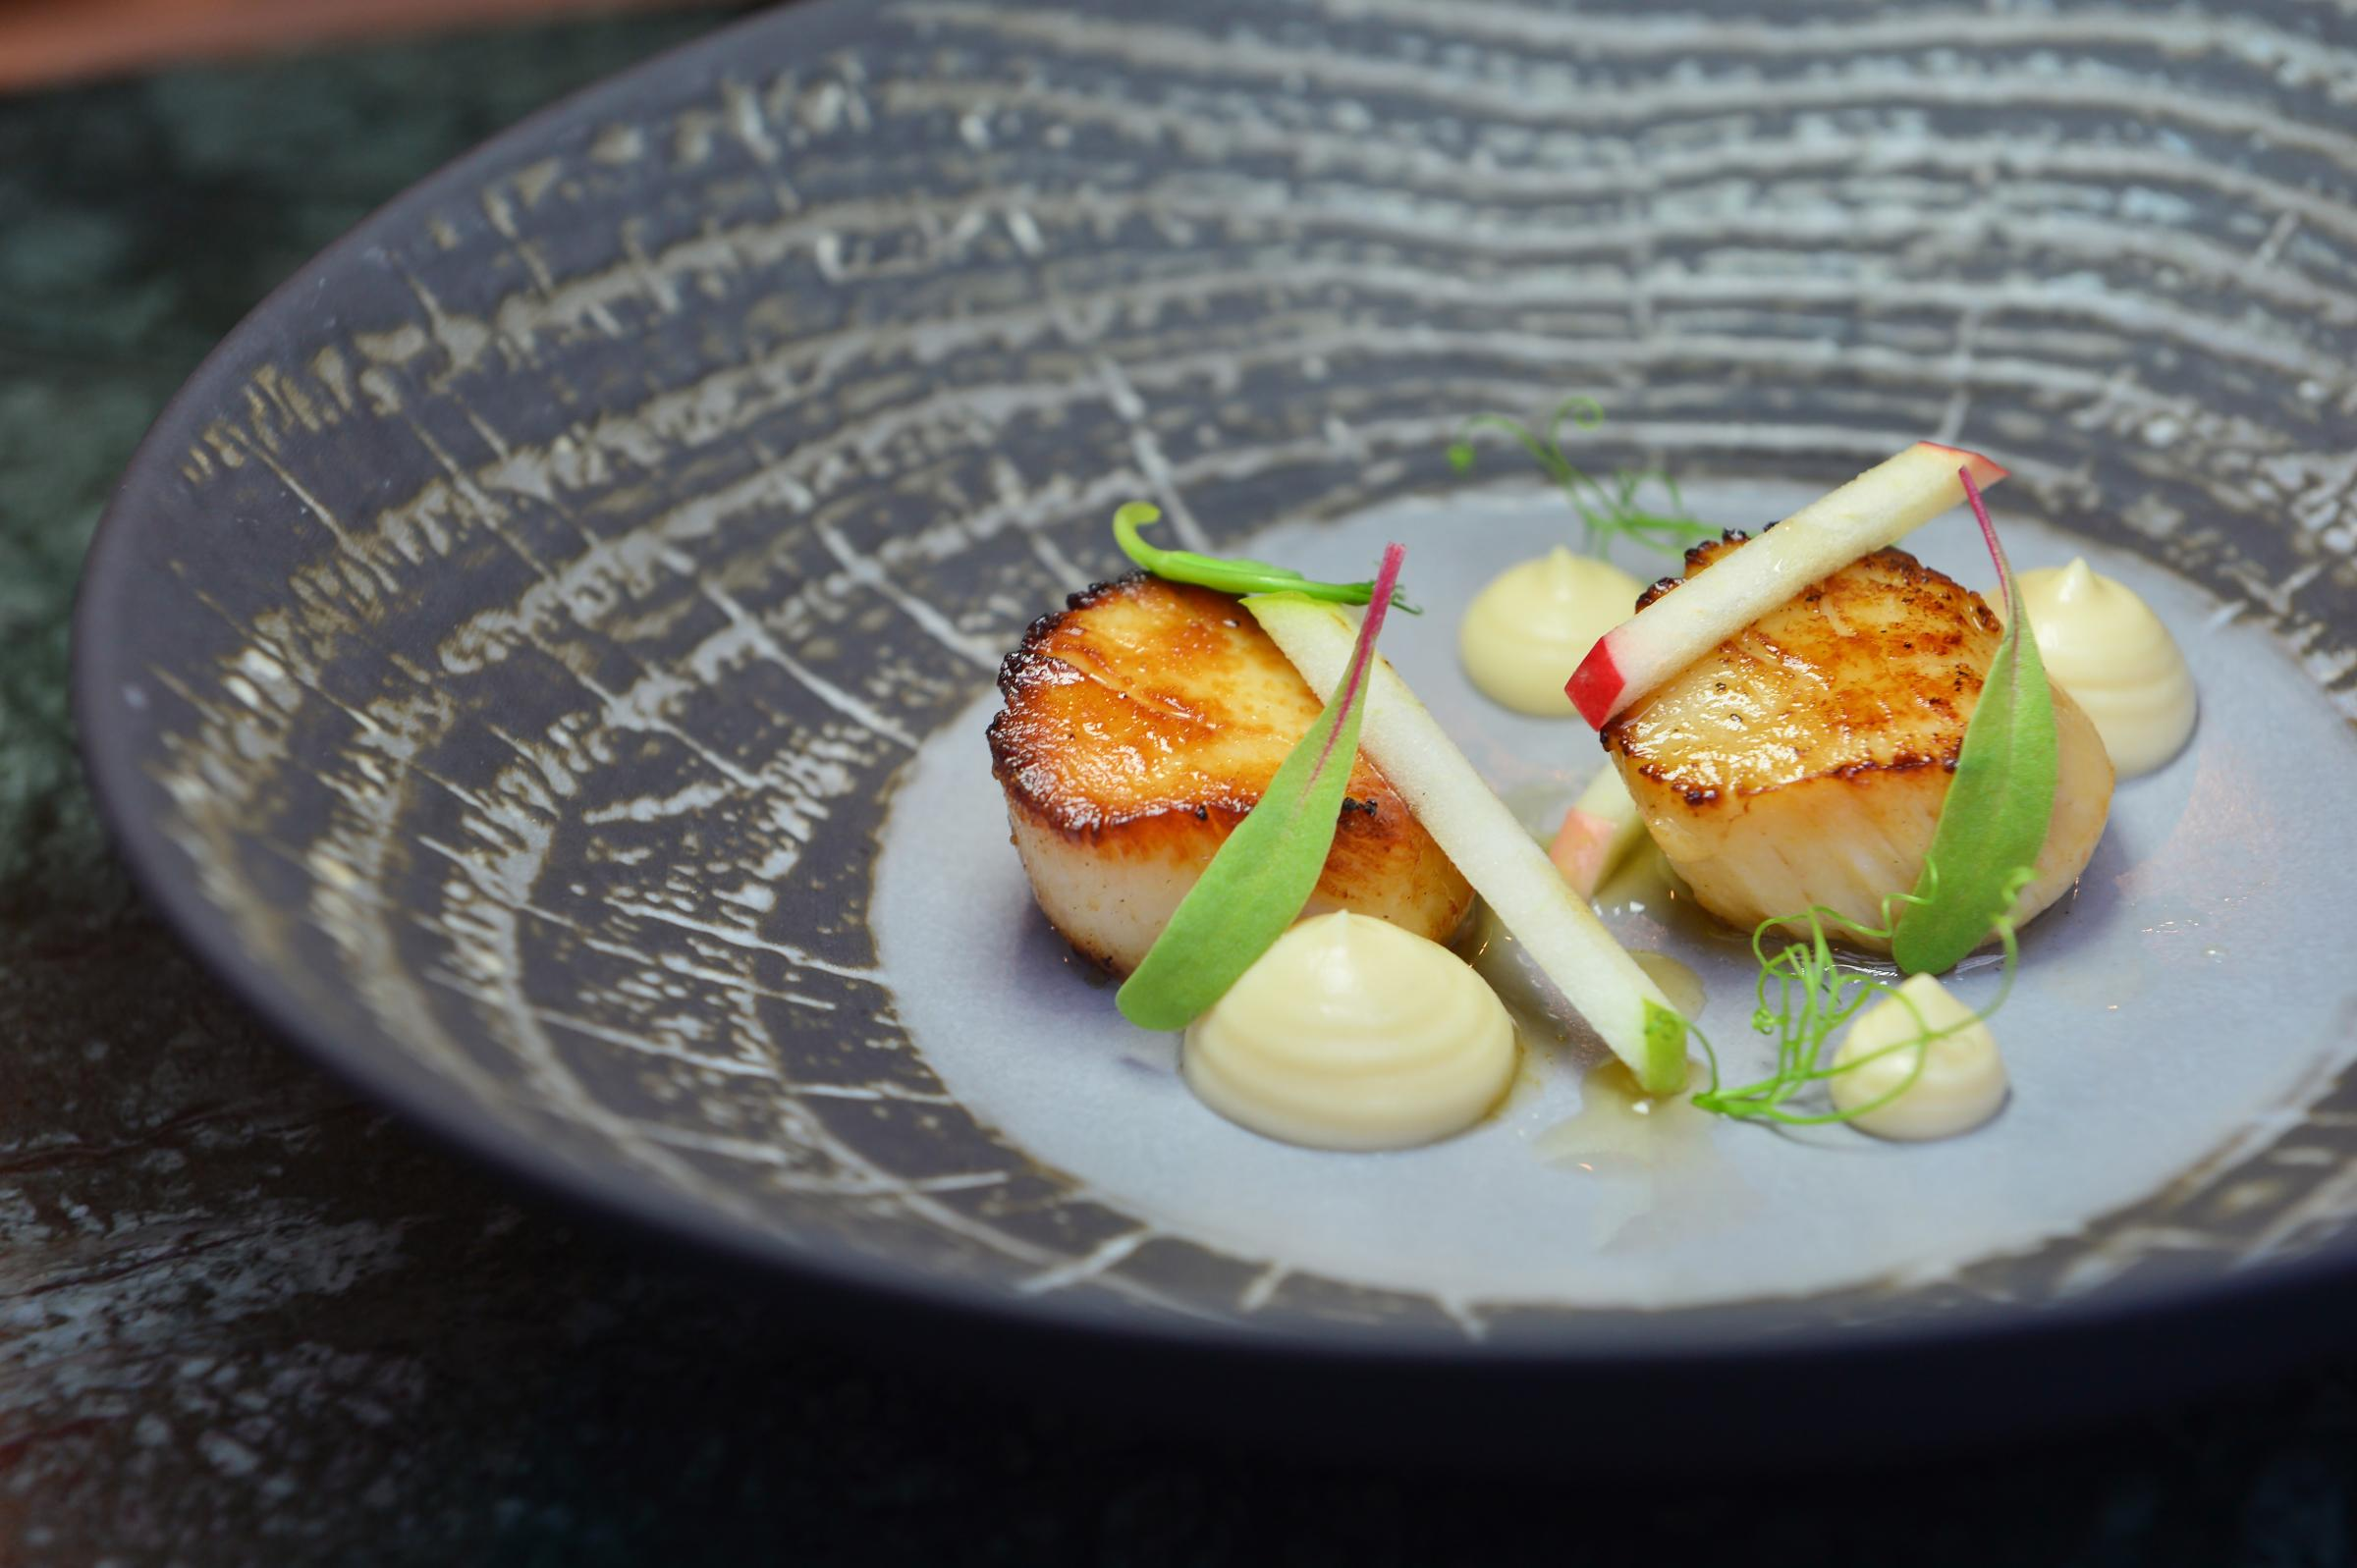 Recipe of the Day: Hand-dived Scottish scallops, celeriac, apple and truffle by Simon Attridge, executive chef at Gleneagles